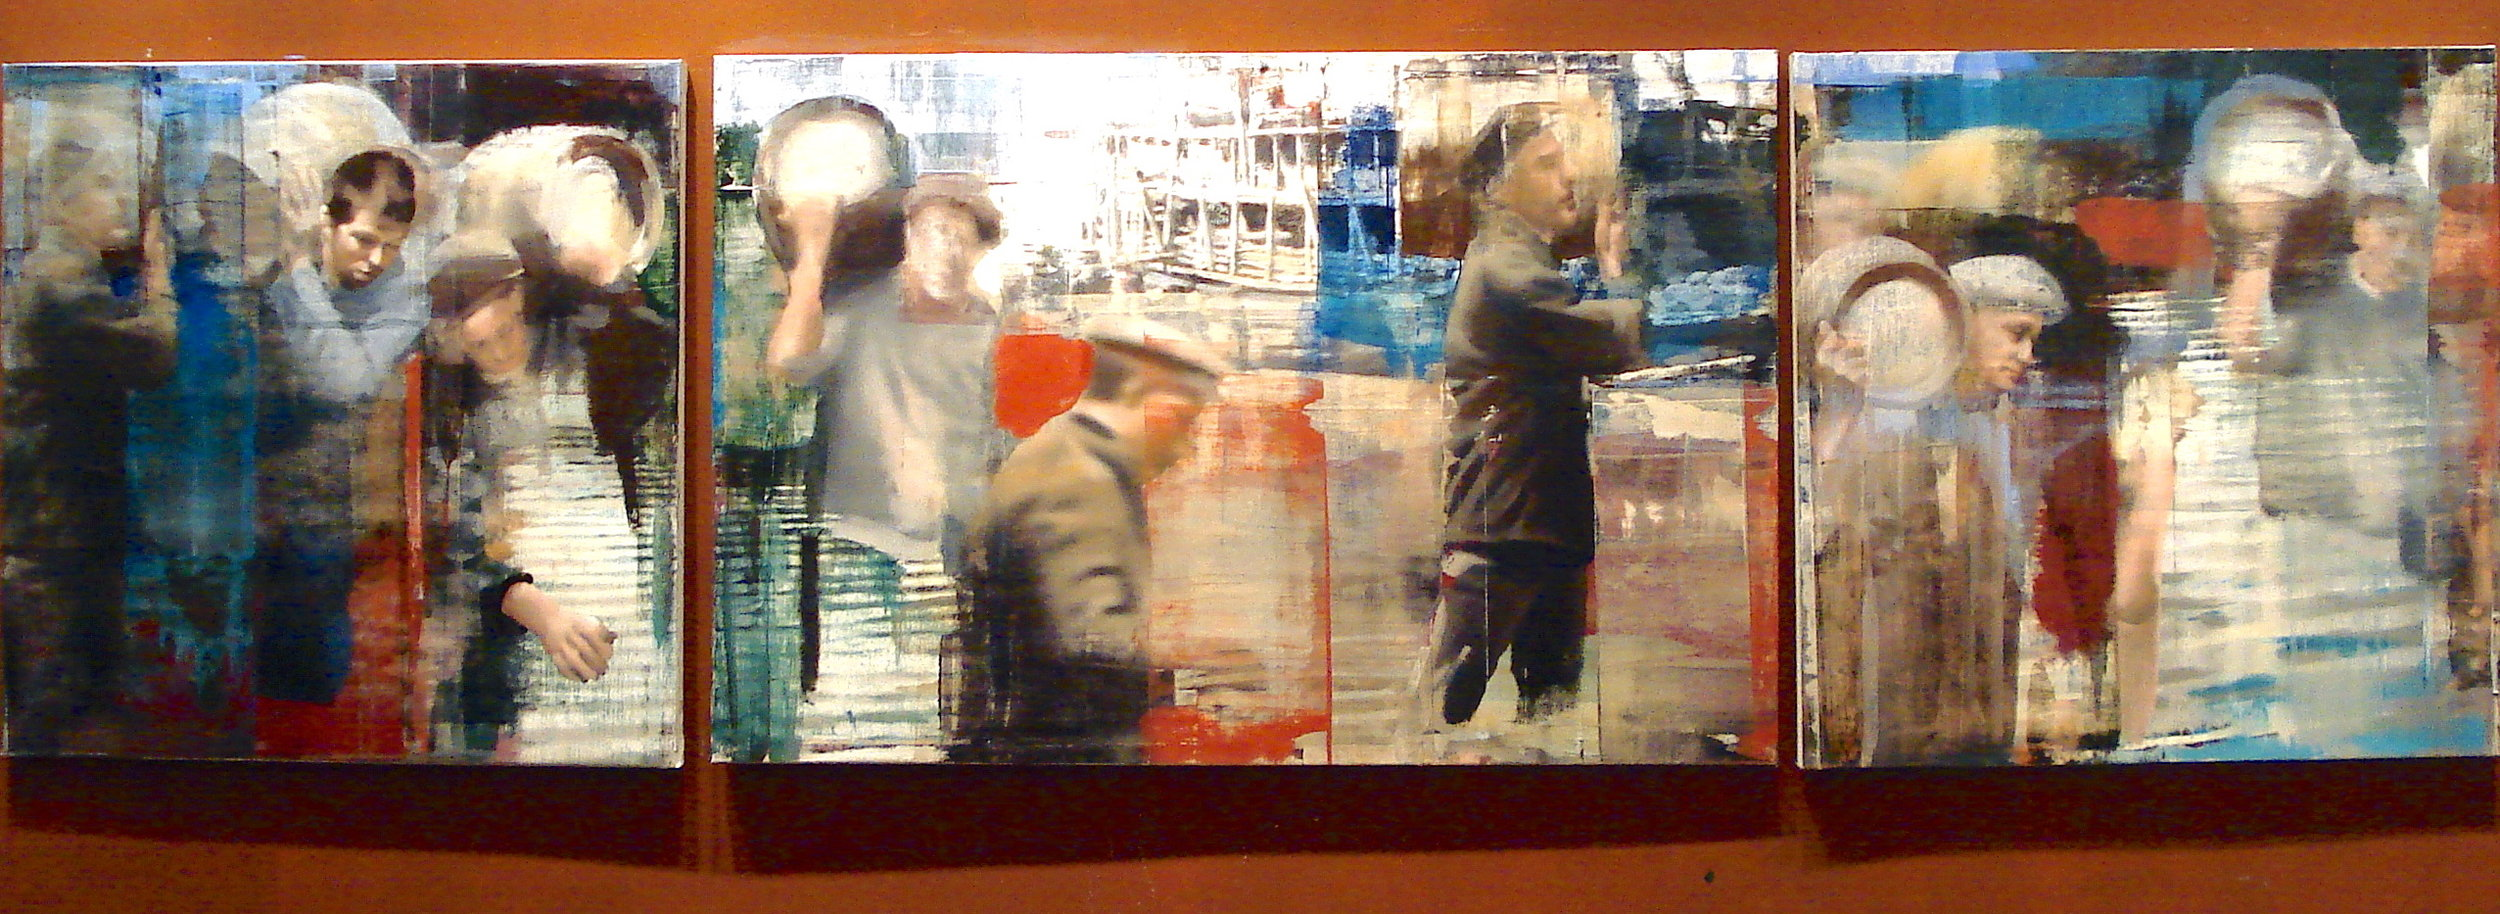 "20. Moving the Barrels, Oil on Linen on Panel, 2013, 48"" X 168"""